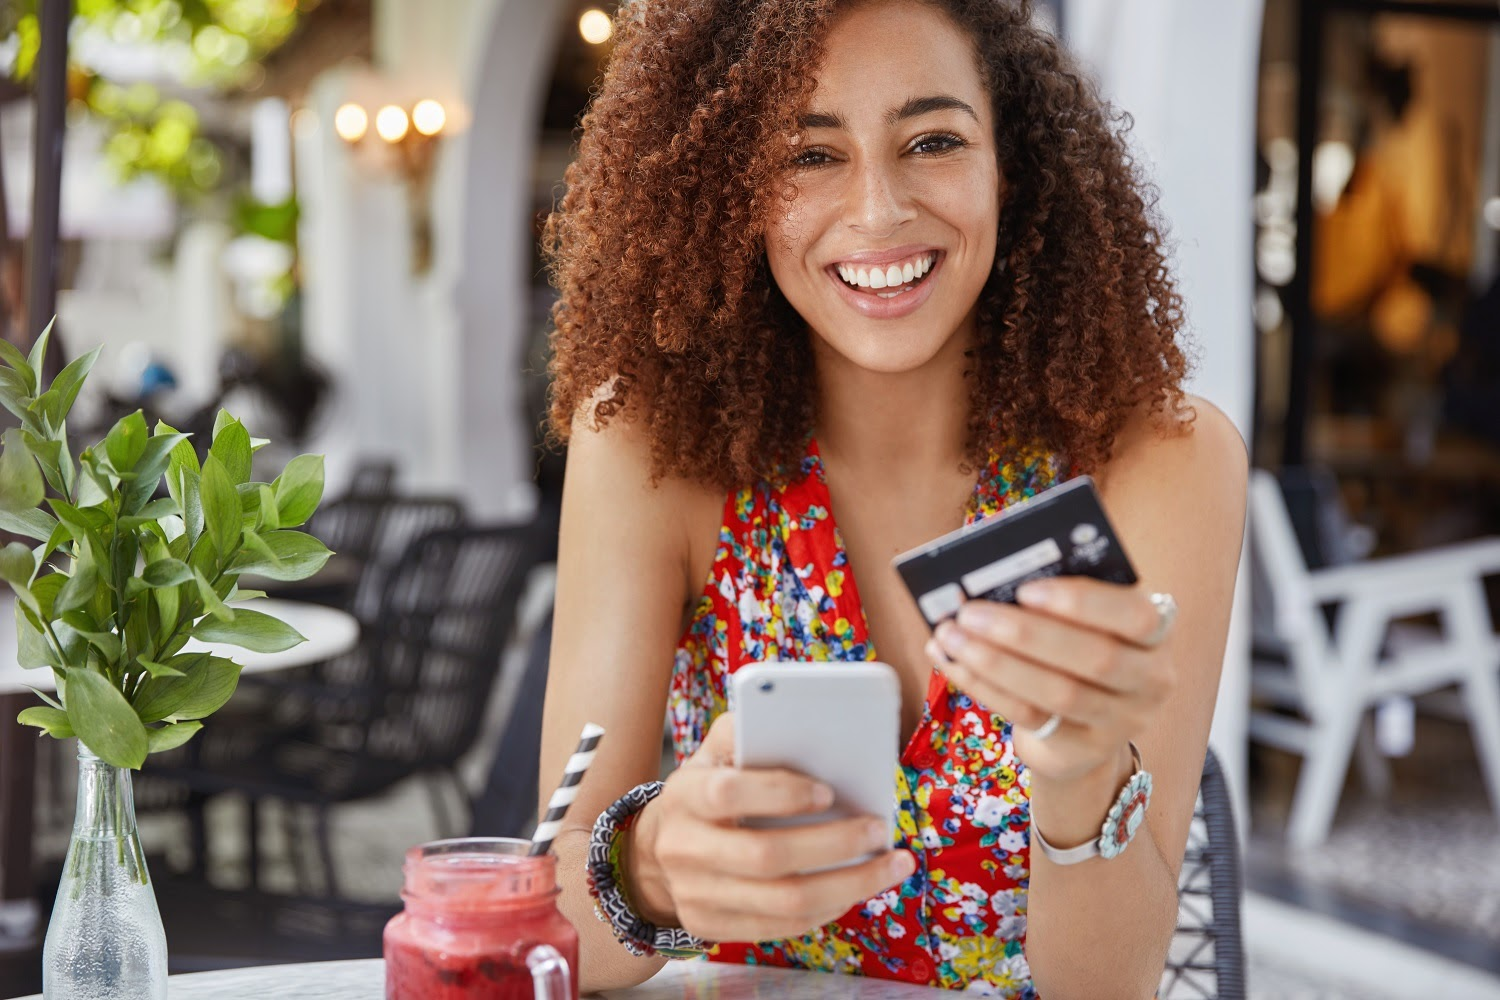 Low interest credit cards: Young smiling woman holding credit card while sitting at a cafe